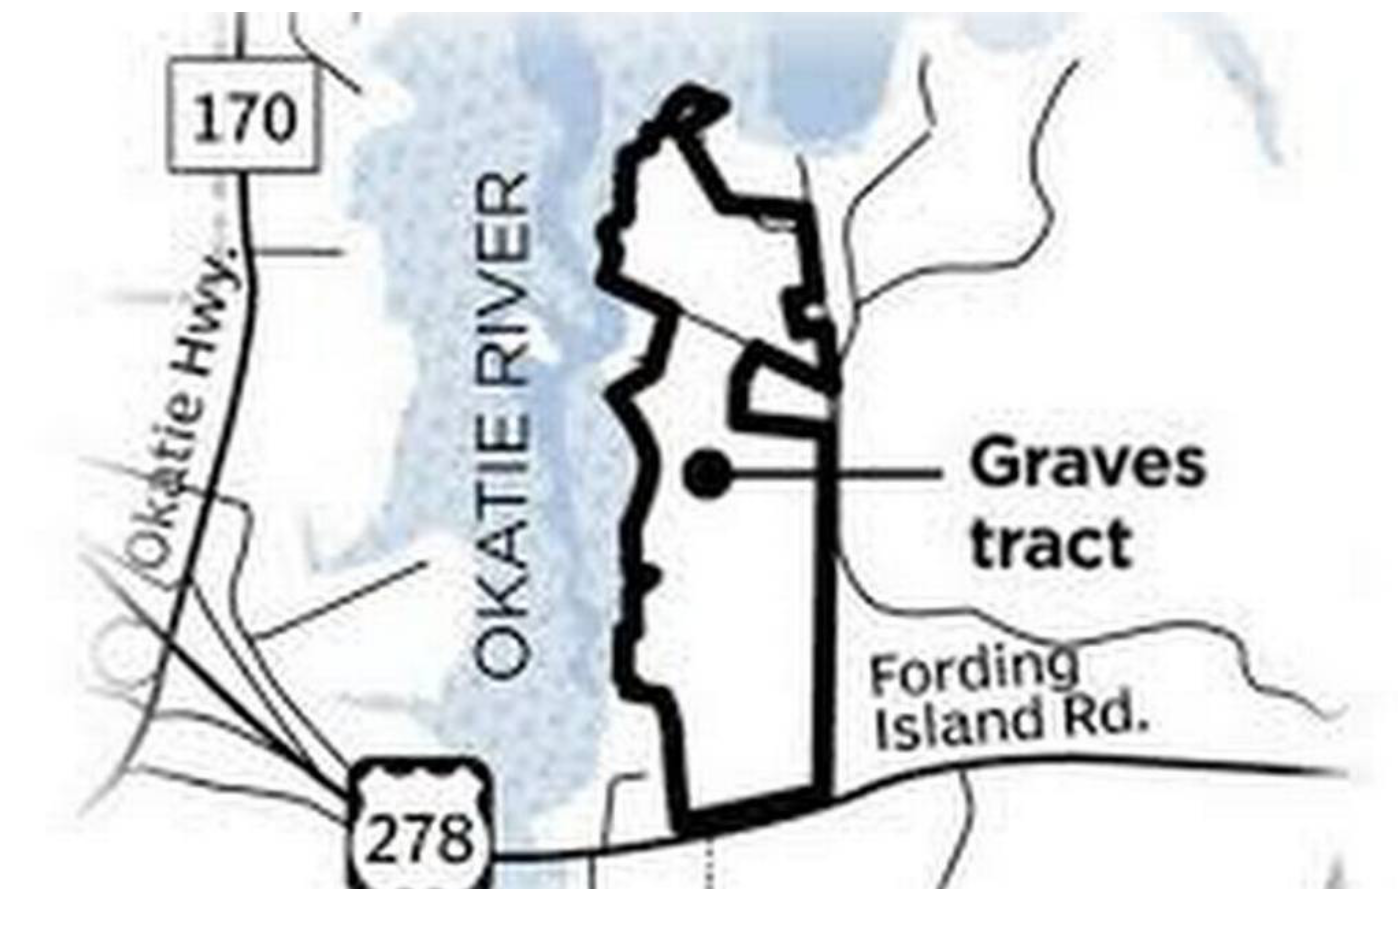 Graves tract: Okatie River, Bluffton Township